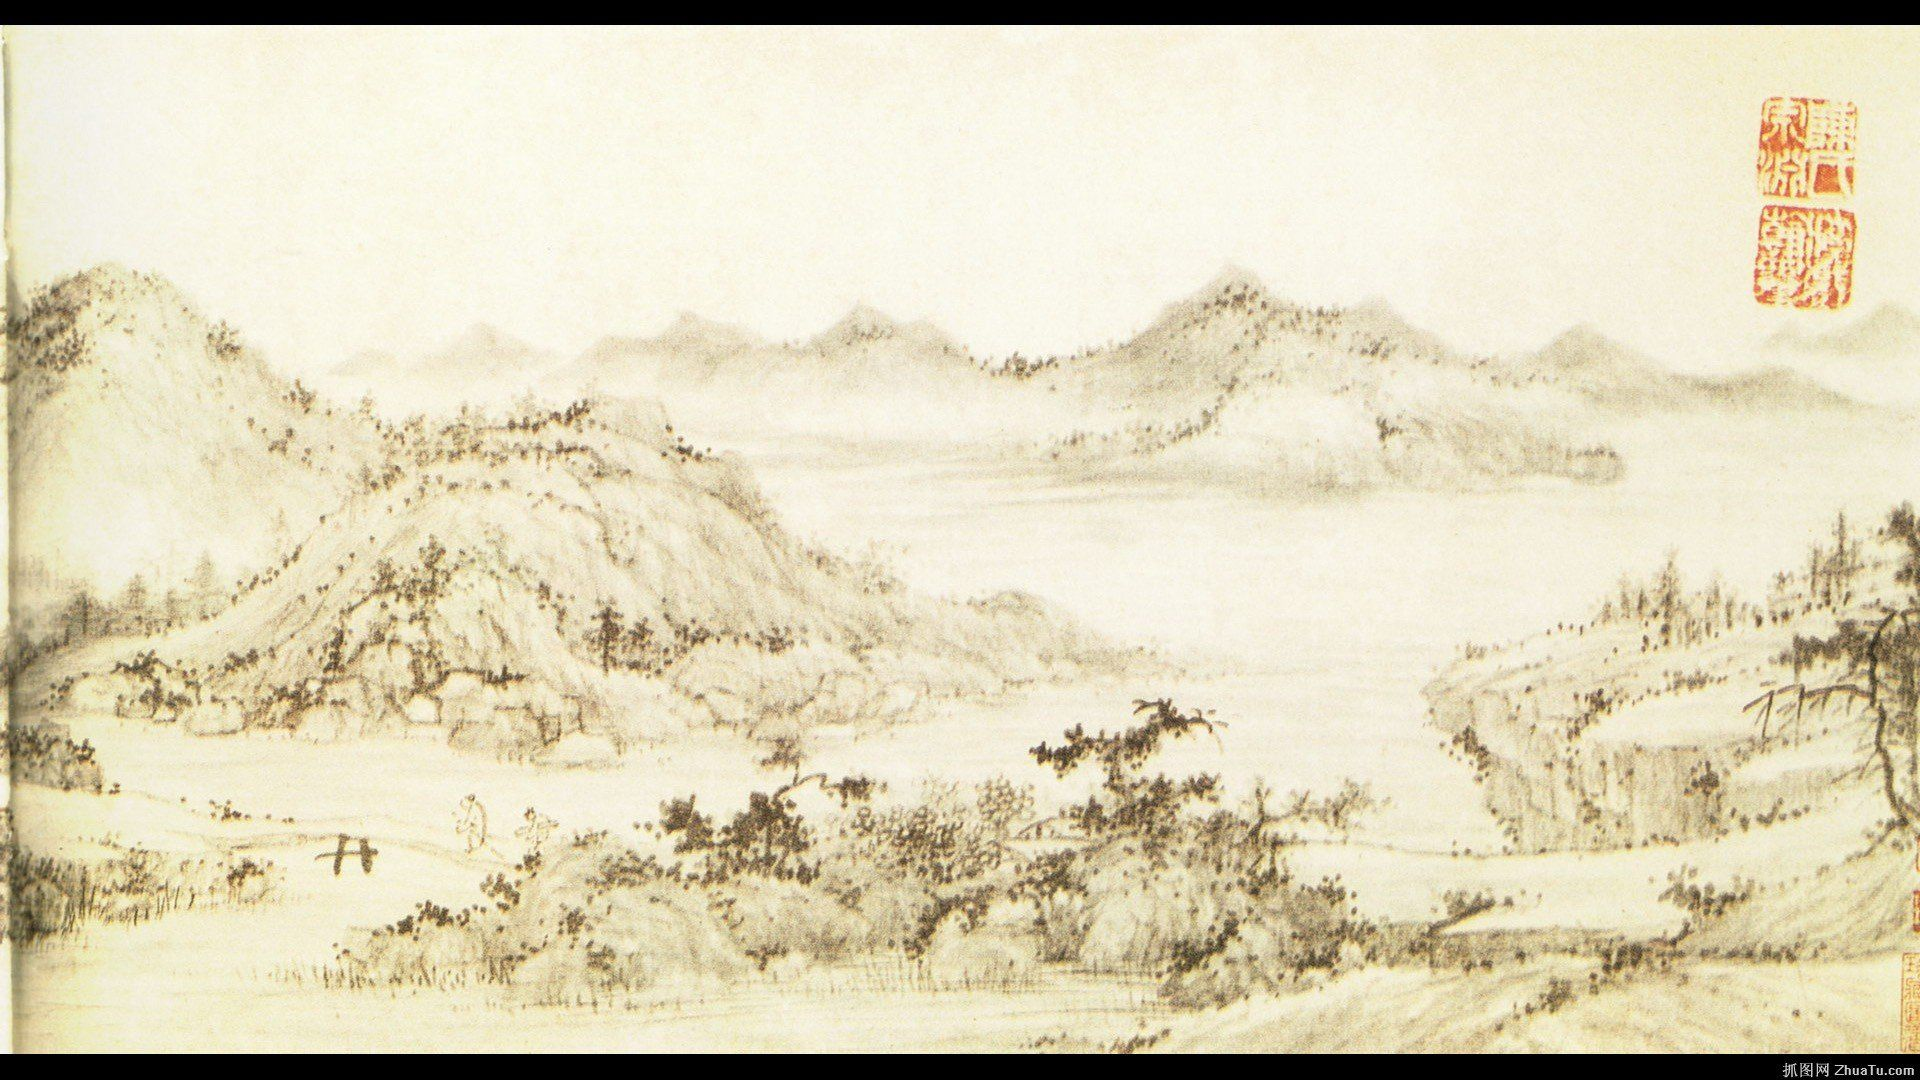 Traditional Chinese Paintings Wallpapers - Top Free